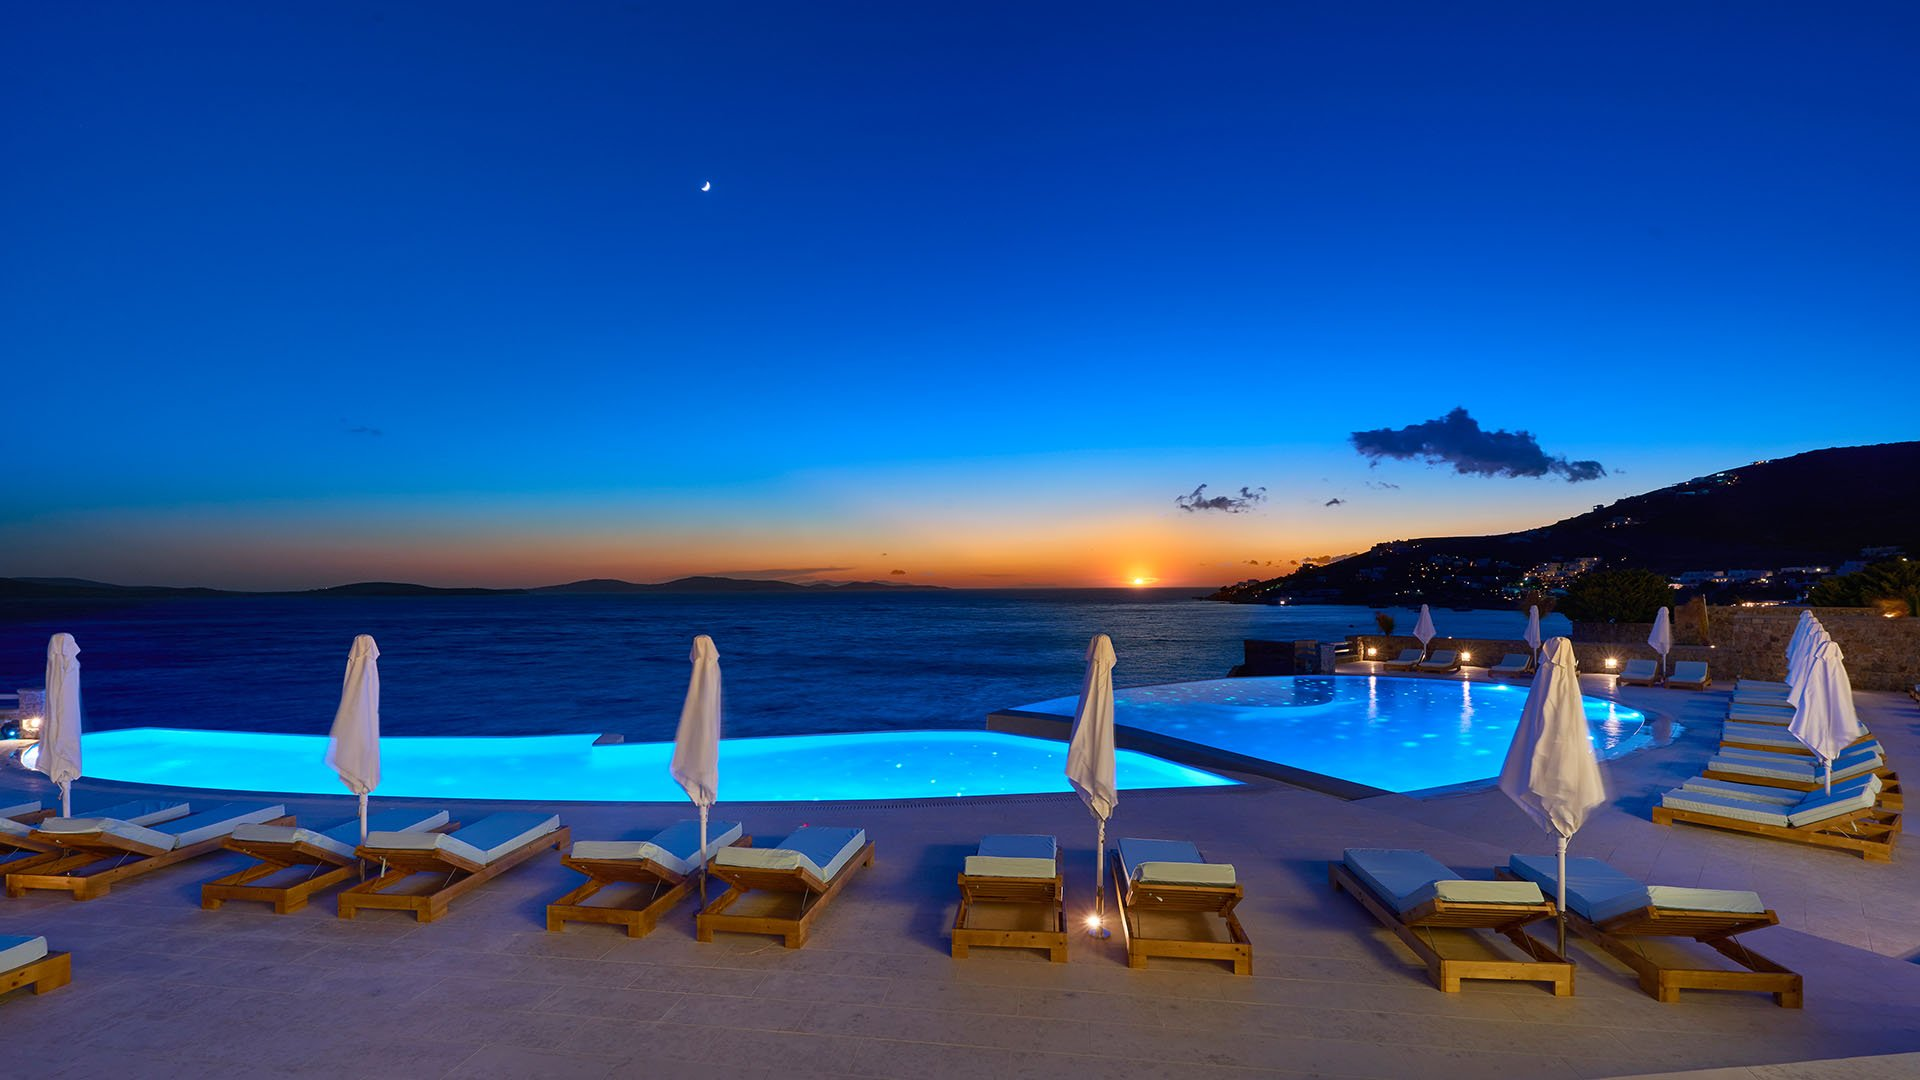 anax_resort_mykonos_1